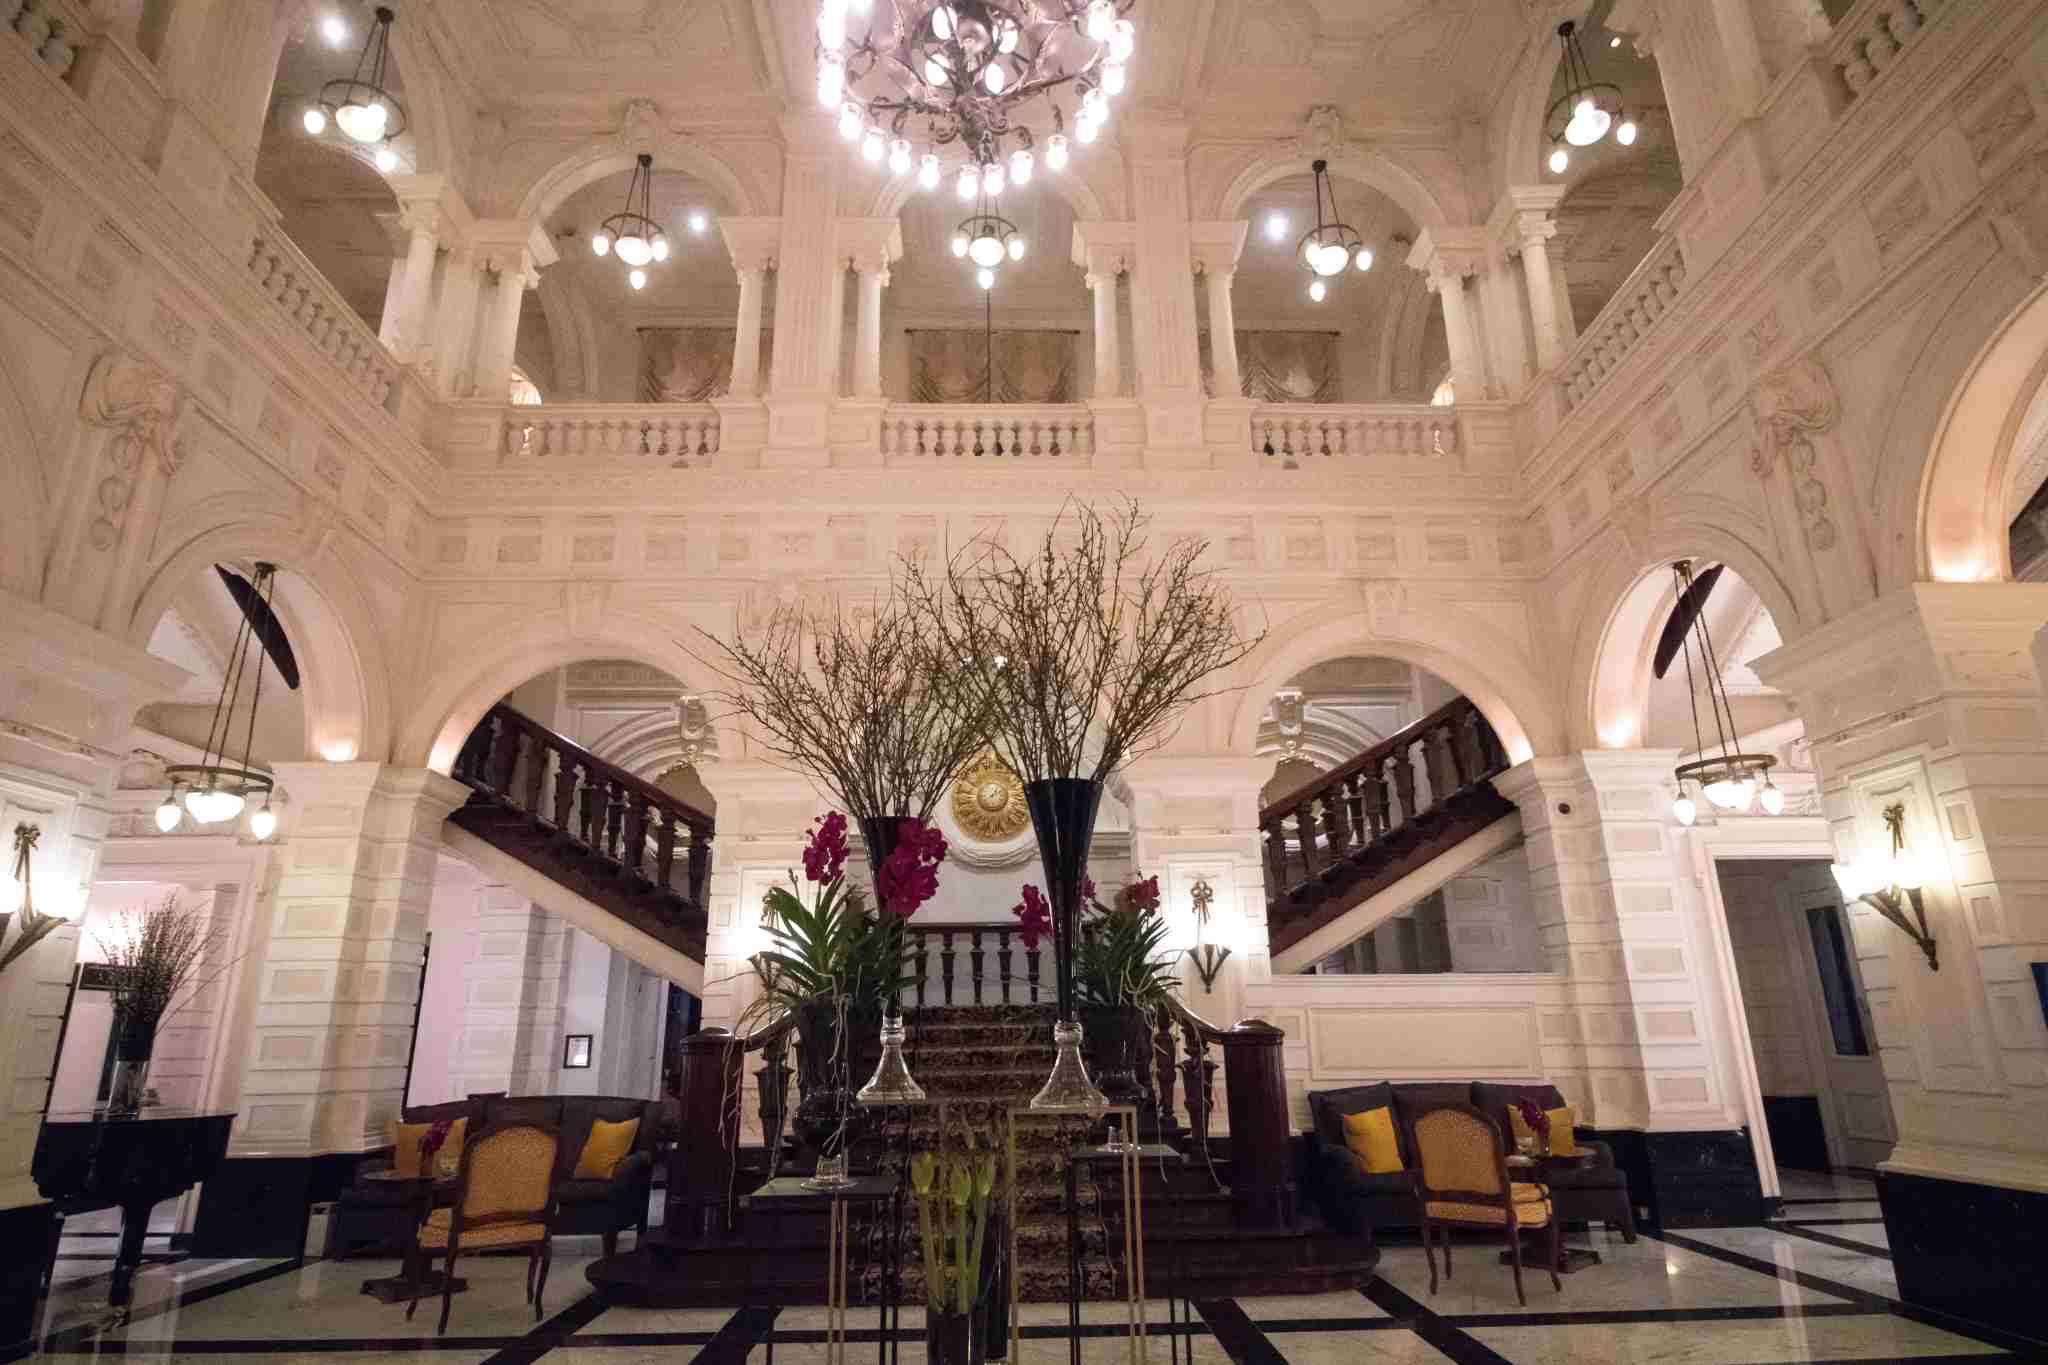 The luxurious lobby of the InterContinental Amstel Amsterdam. (Photo by Danielle VIto / The Points Guy)